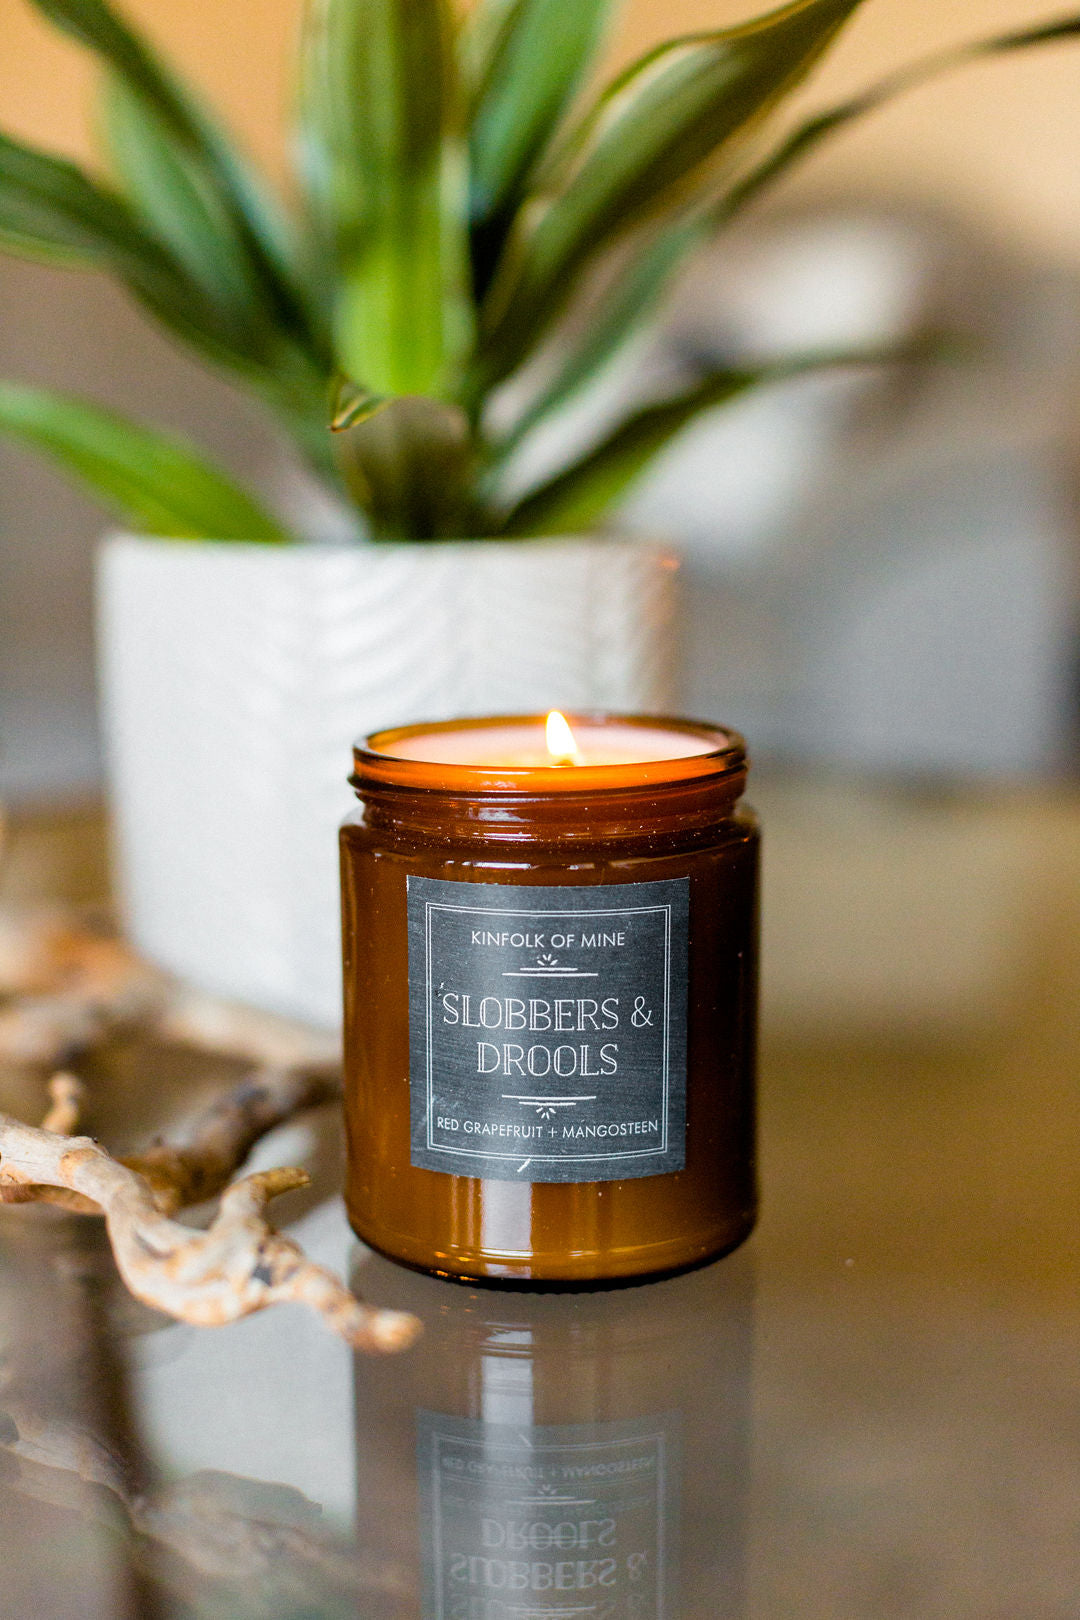 Slobbers & Drools 9oz Candle